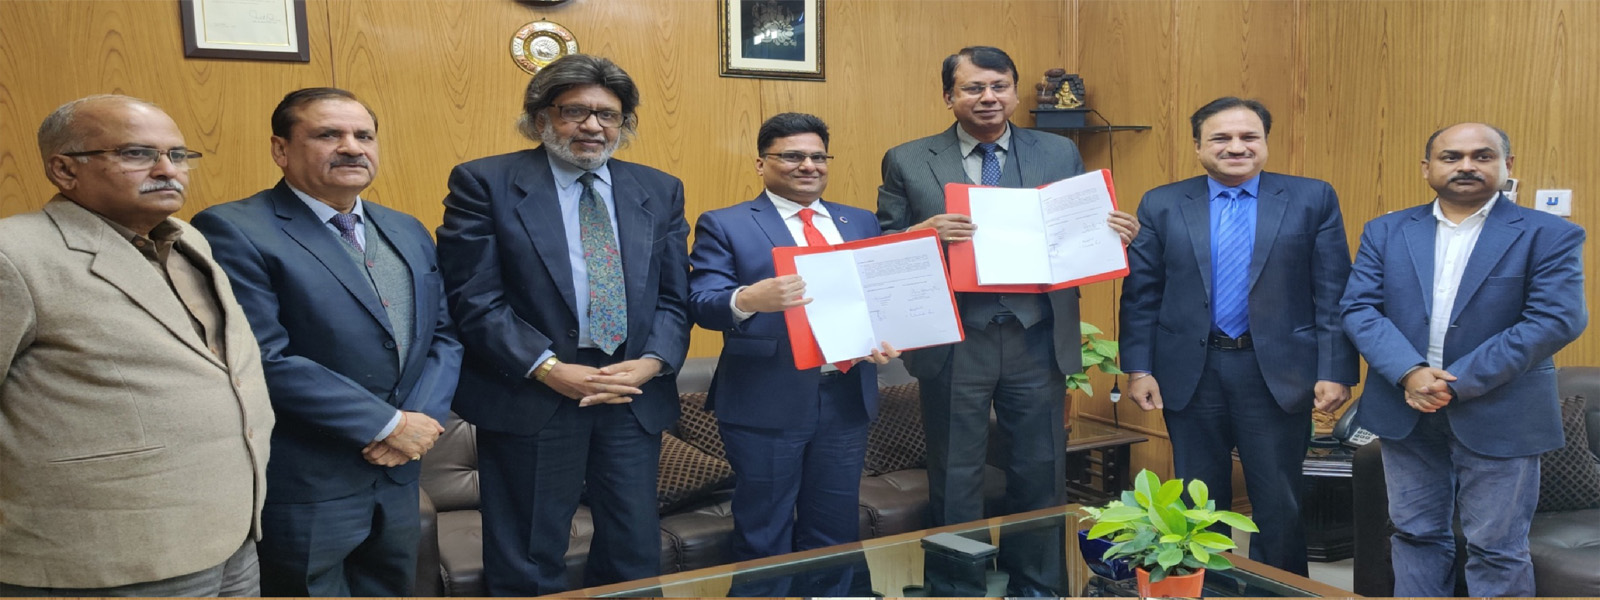 MoU between PHDCCI and National Productivity Council